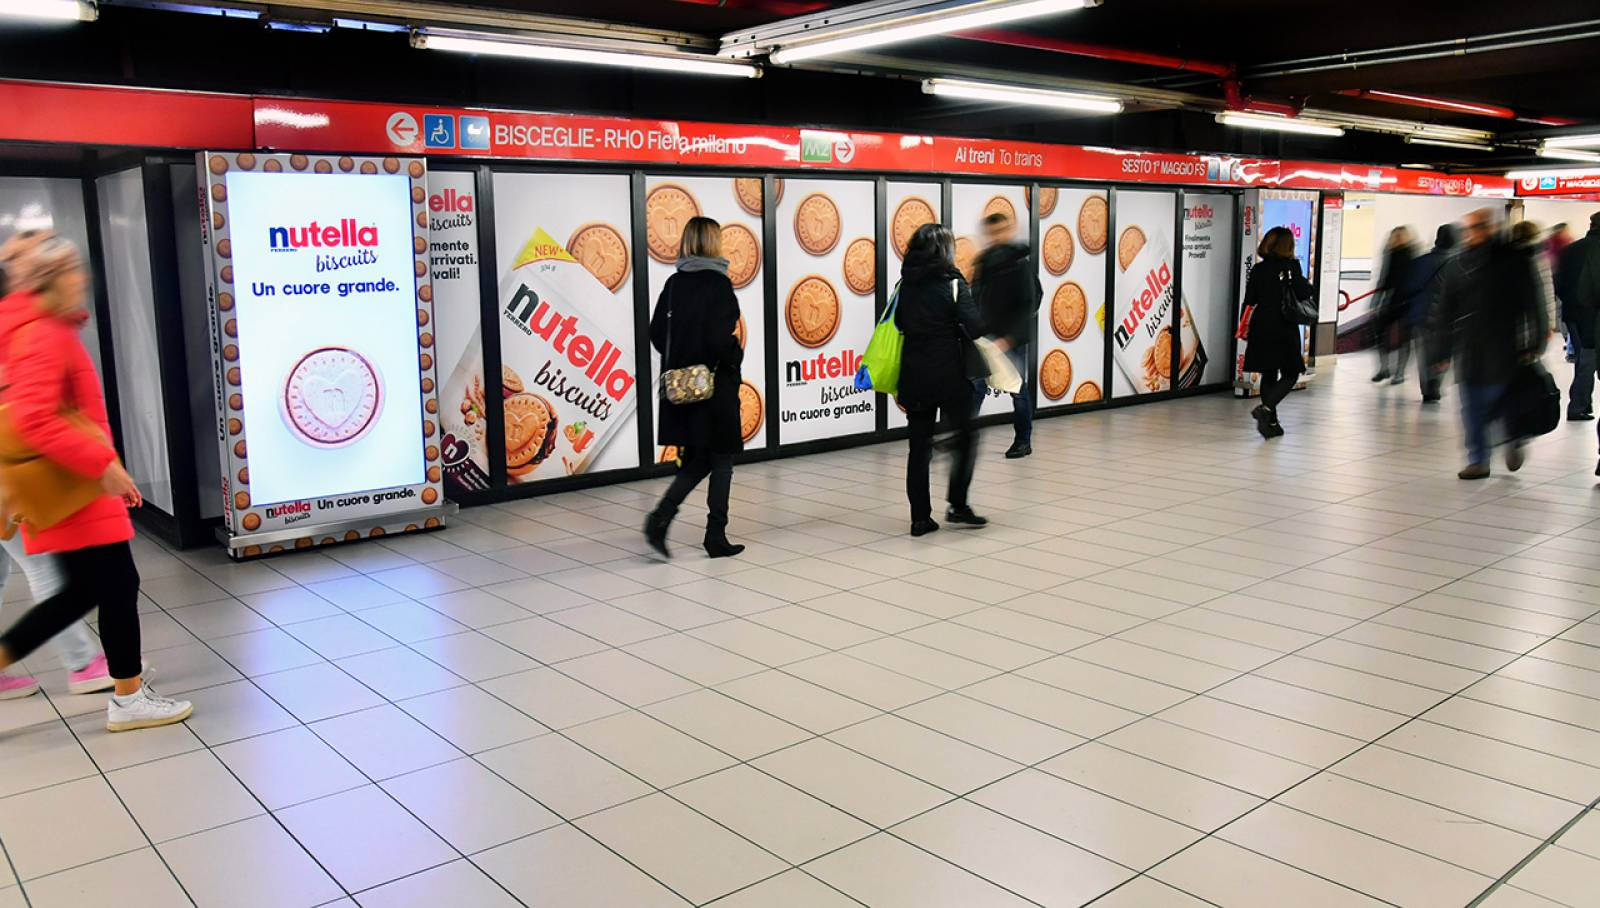 IGPDecaux Milano Station Domination per Ferrero Nutella Biscuits